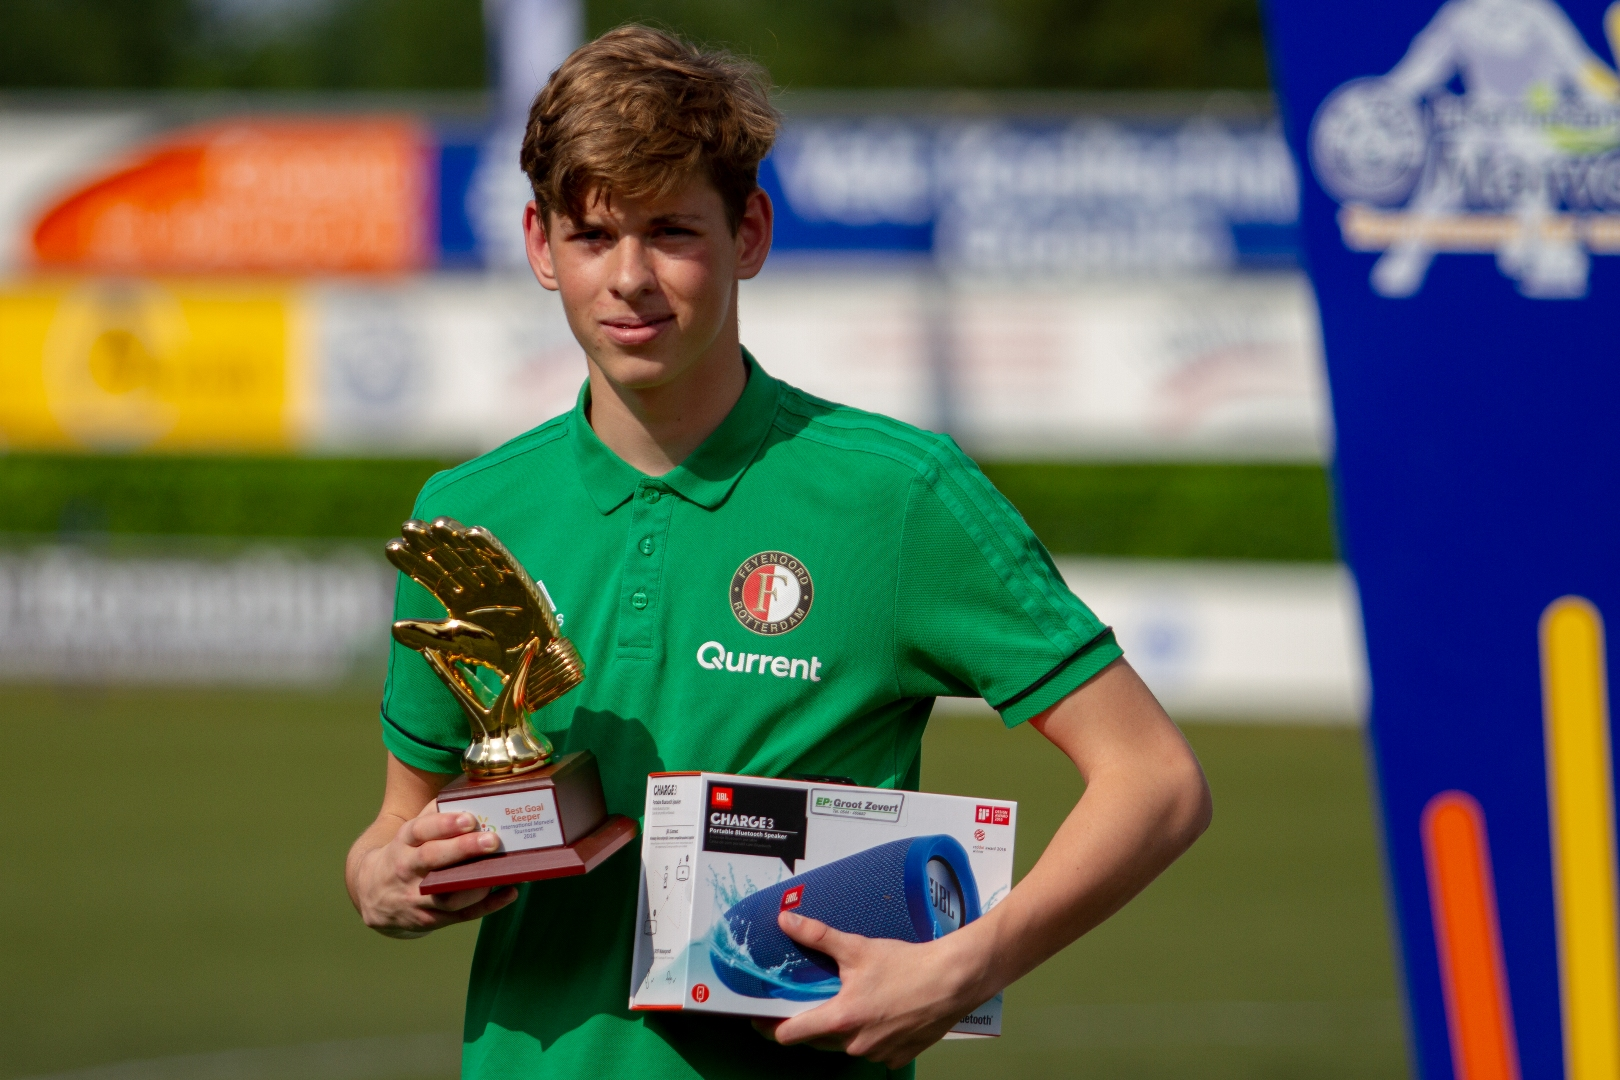 Marveld Tournament 2018 - Best Goalkeeper Devin Remie of Feyenoord